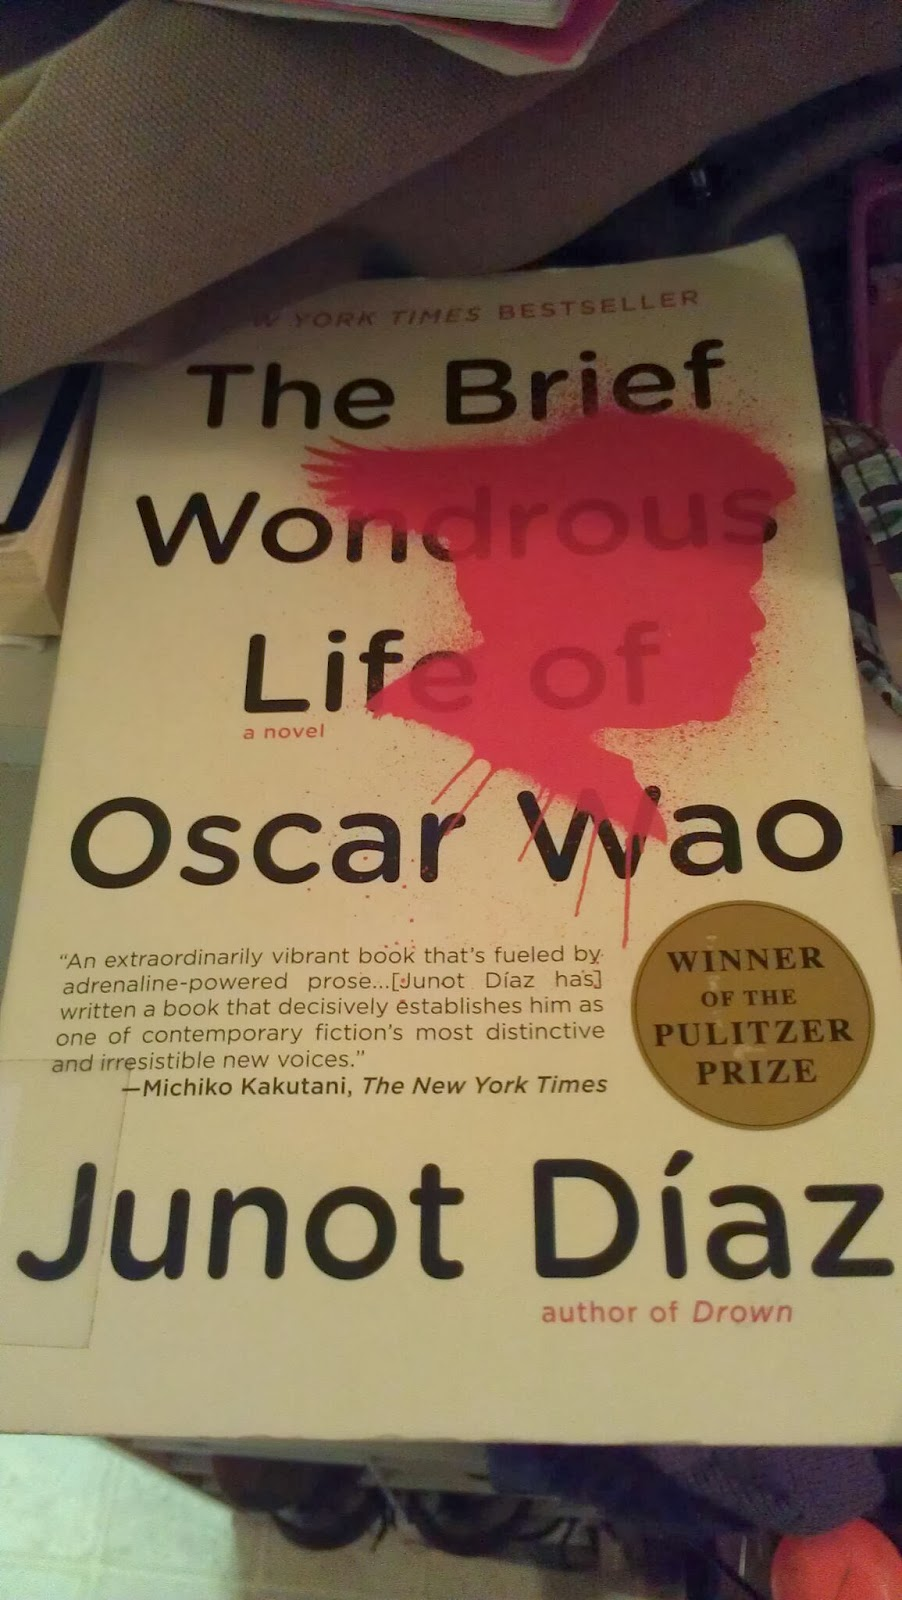 junot diazz the brief wondrous life of oscar wao oscars search for identity as a dominican male in t Abstract the aim of this article is to examine junot diaz's novel the brief wondrous life of oscar wao (2007) through the post-colonial lens portraying the complicated story of the de leon's family, diaz draws a compelling link between the tragic history of the dominican republic and equally disturbing issues related to the experience of.